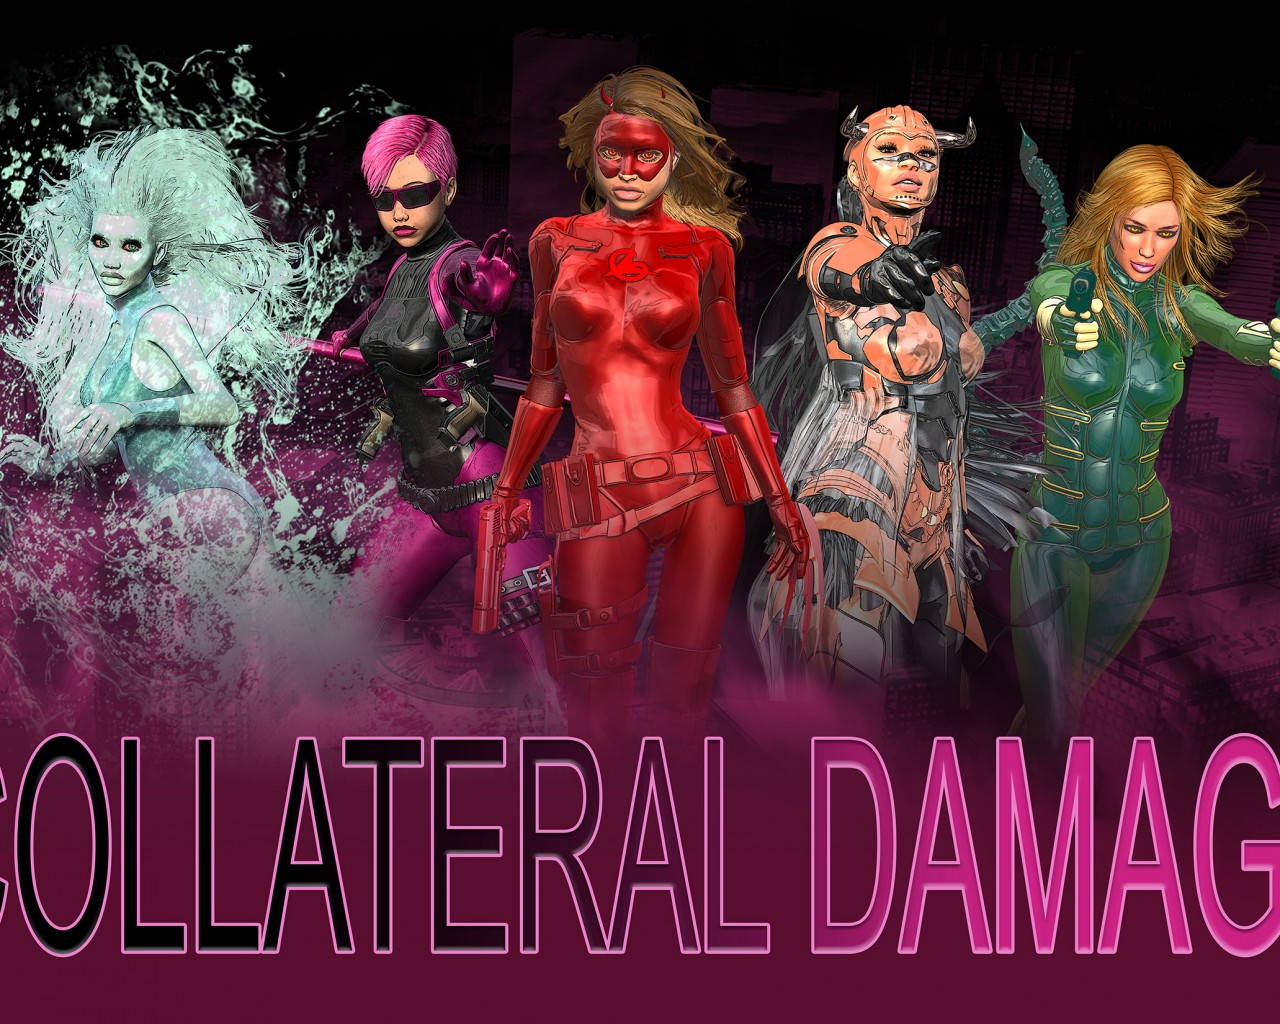 Poster Image for Collateral Damage